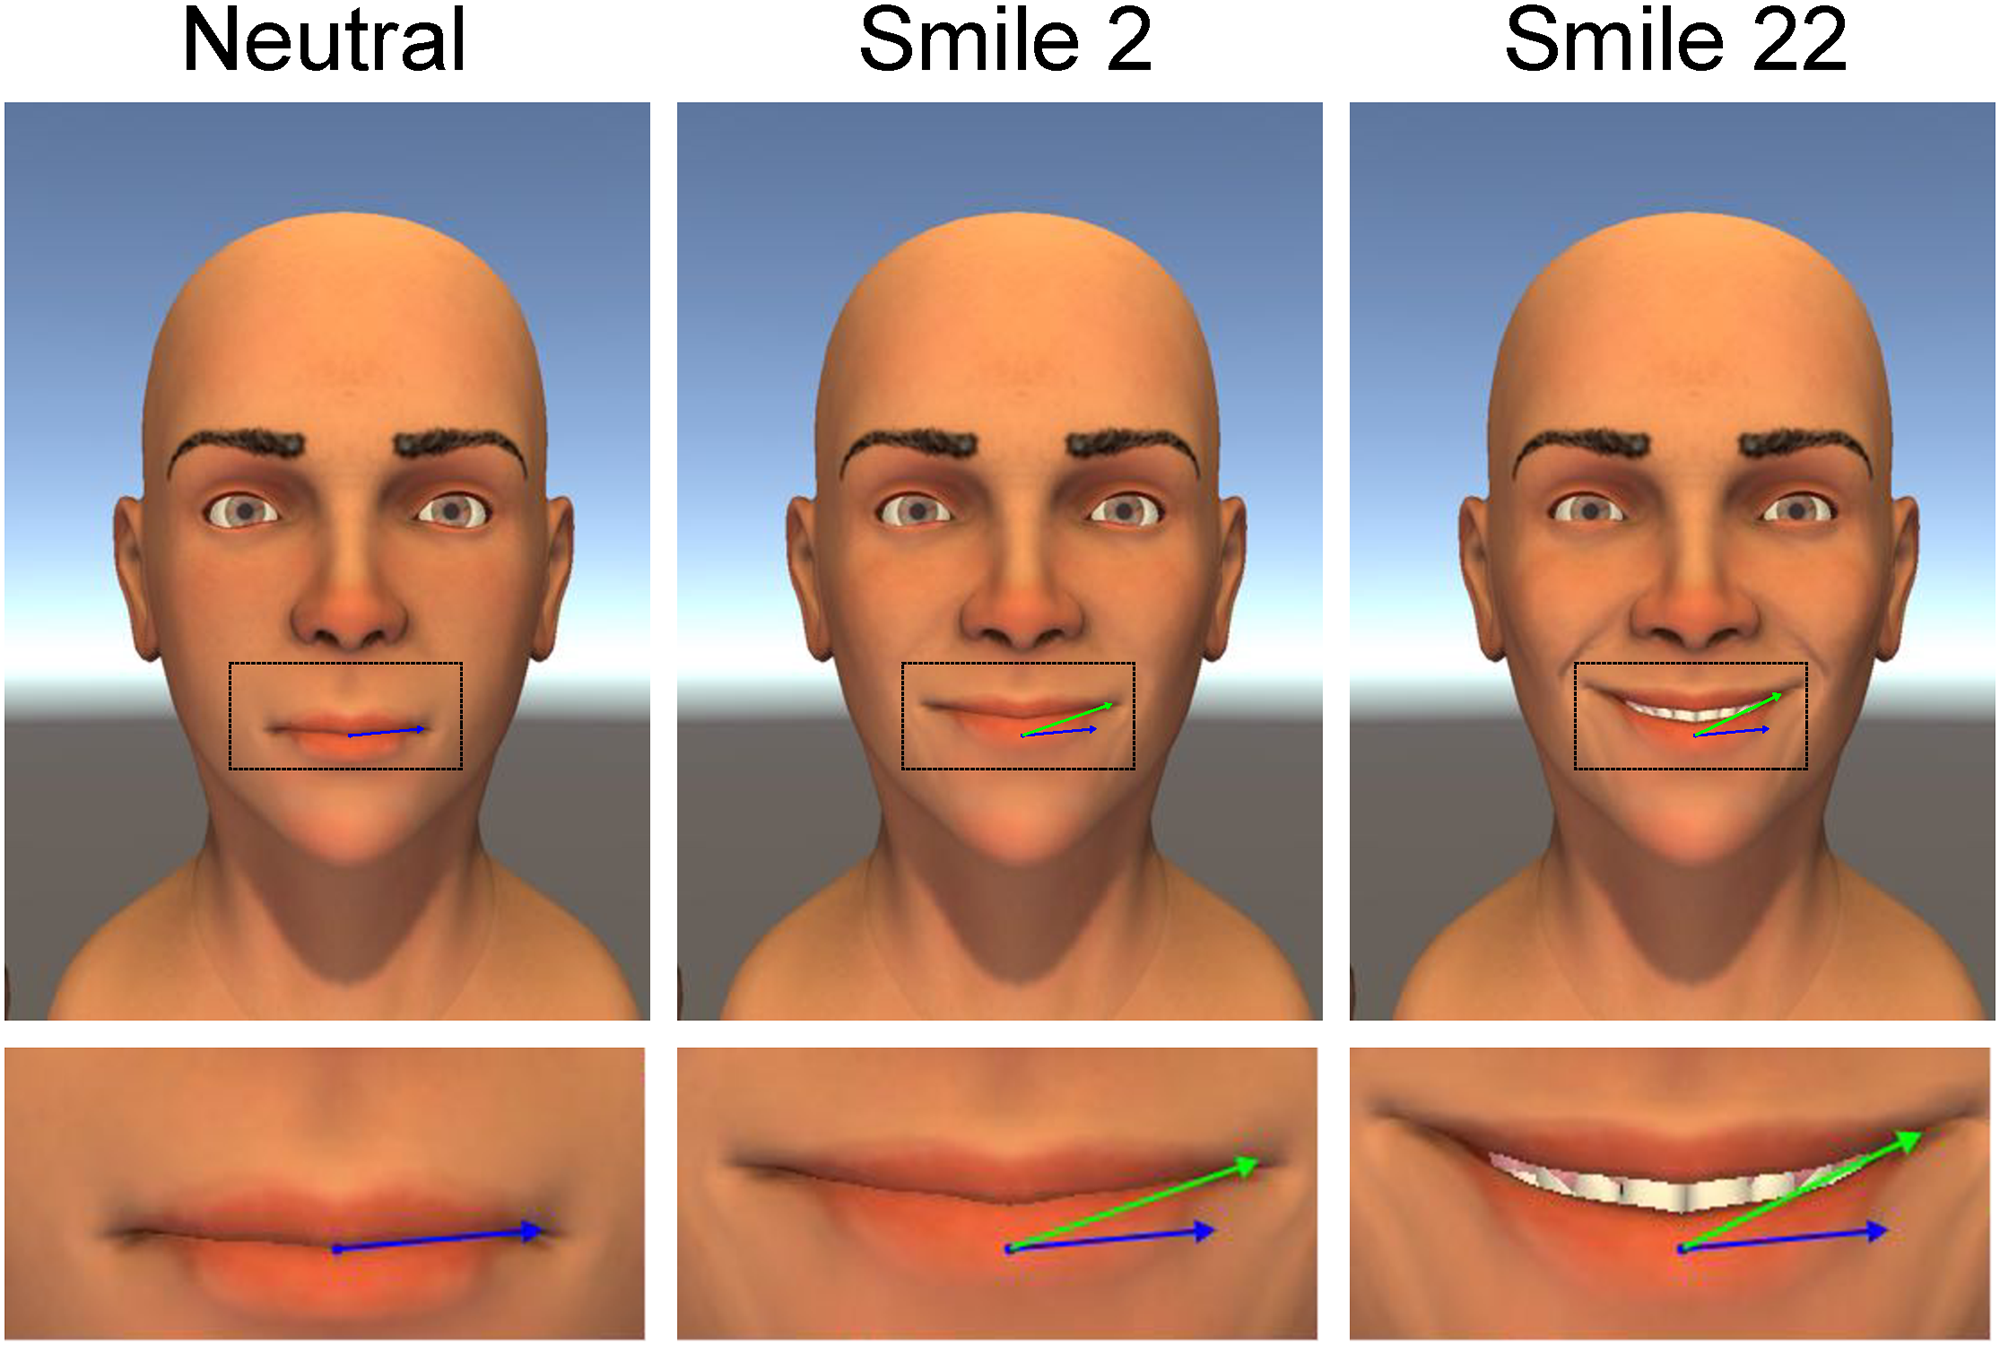 Dynamic Properties of Successful Smiles (image missing)